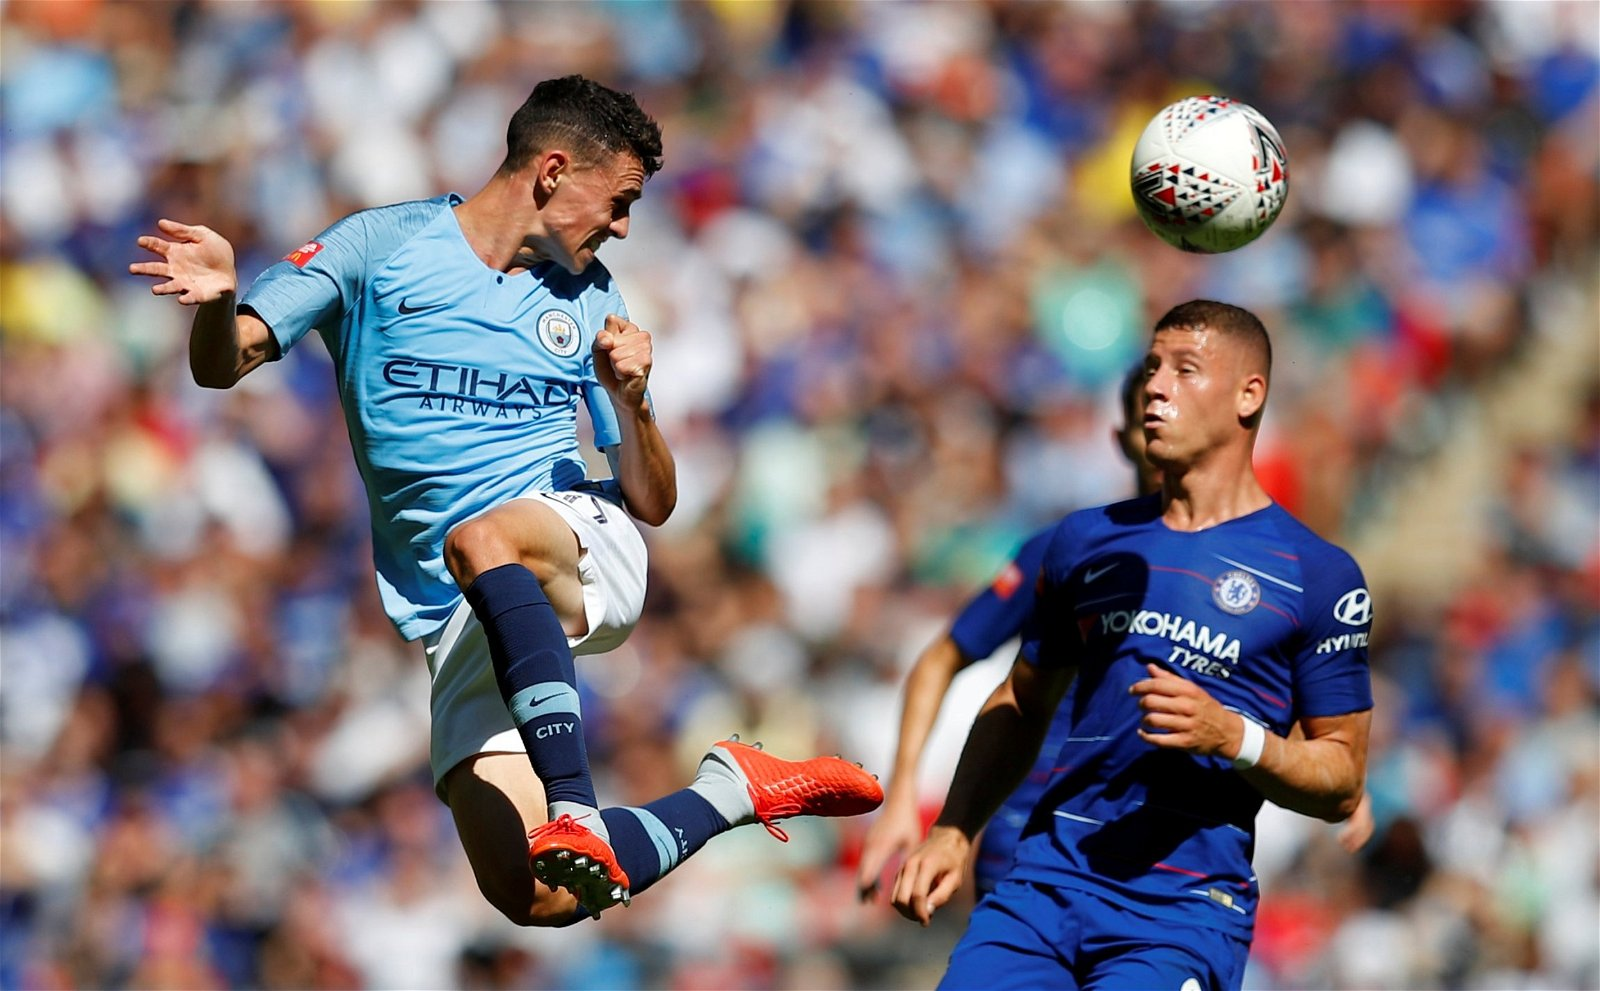 Manchester City's transfer setback gives Phil Foden his chance to shine